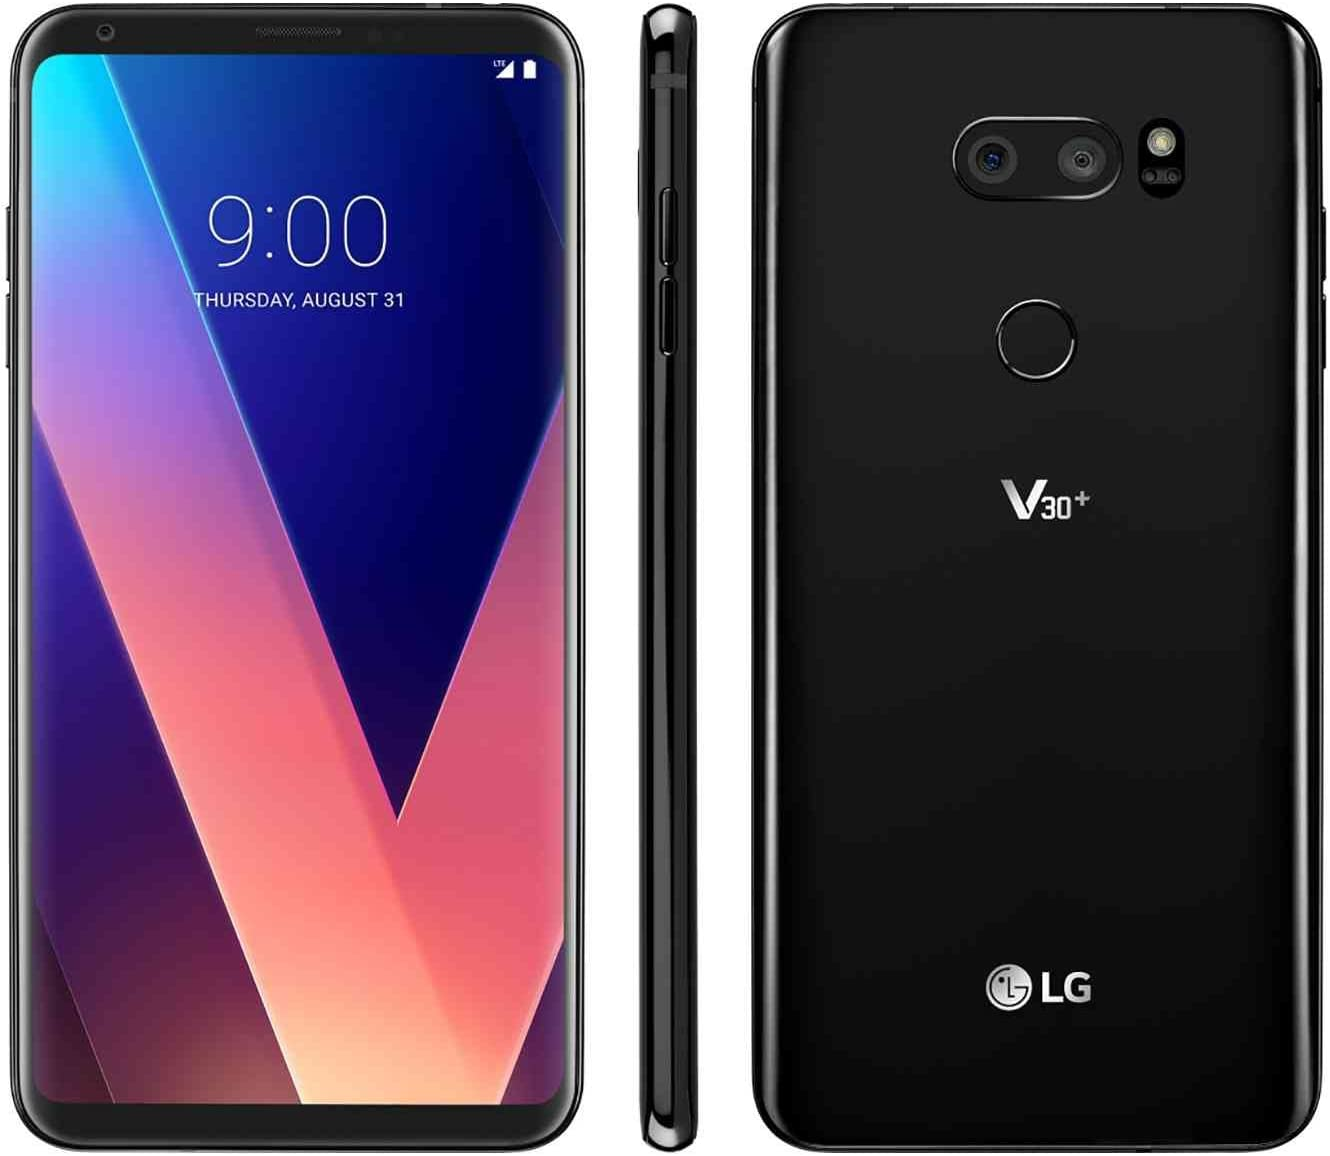 LG V30 Plus Ls998 128Gb Sprint Negro: Amazon.es: Electrónica